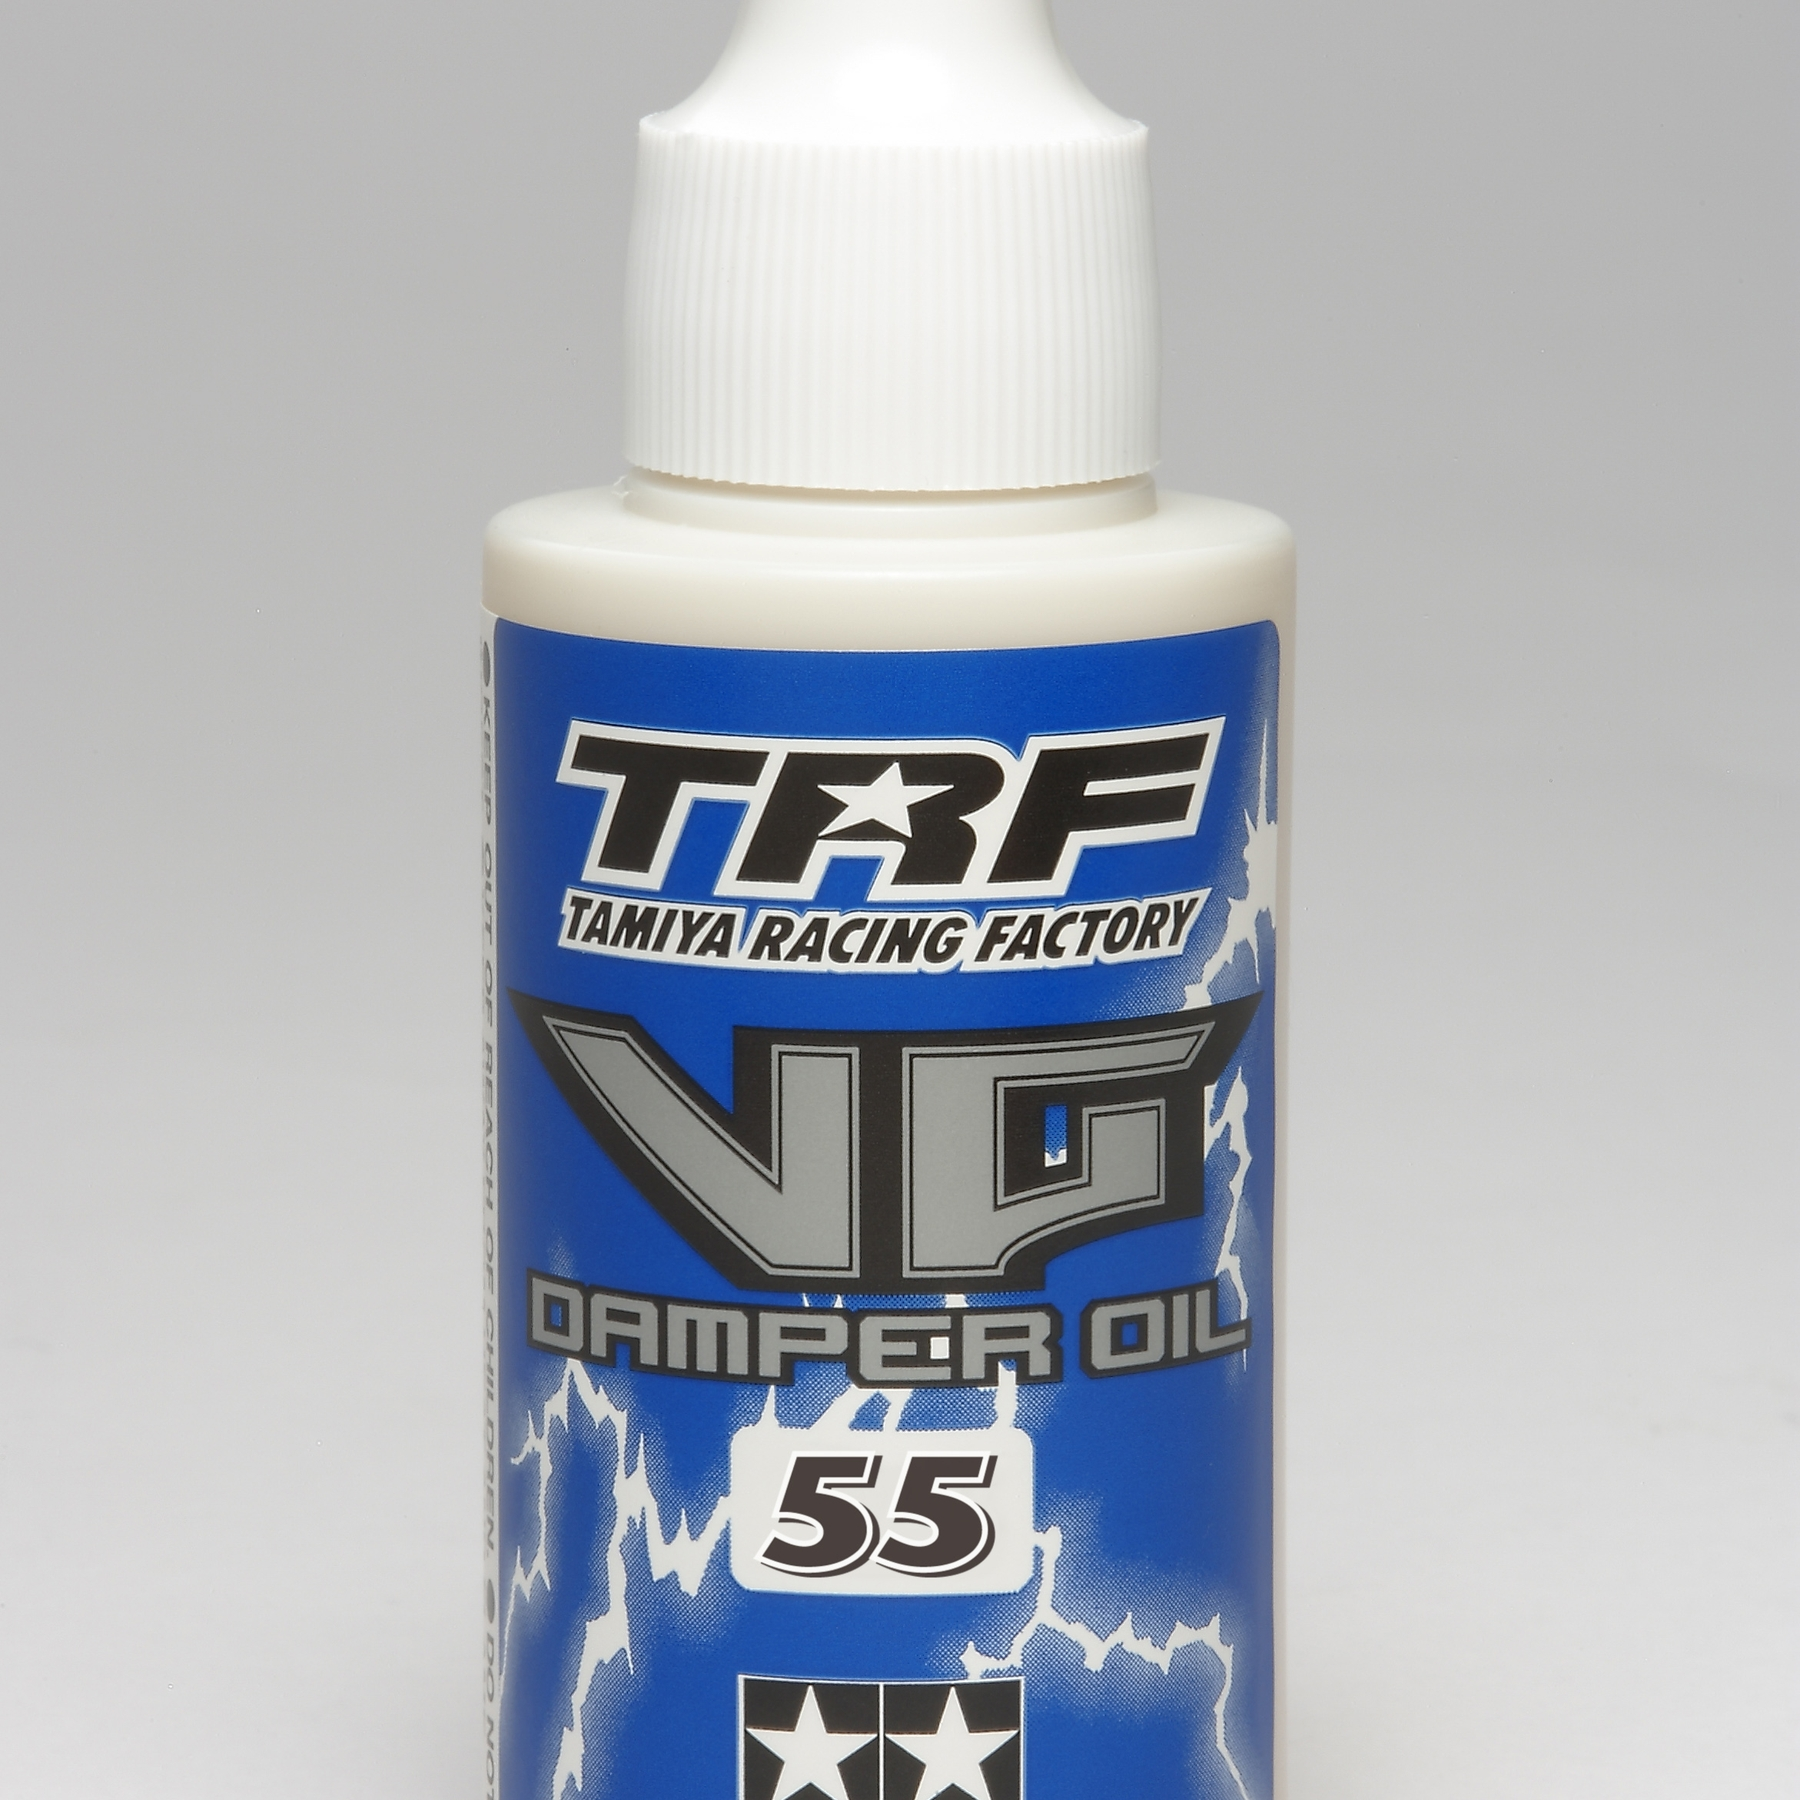 Rc Vg Damper Oil #55